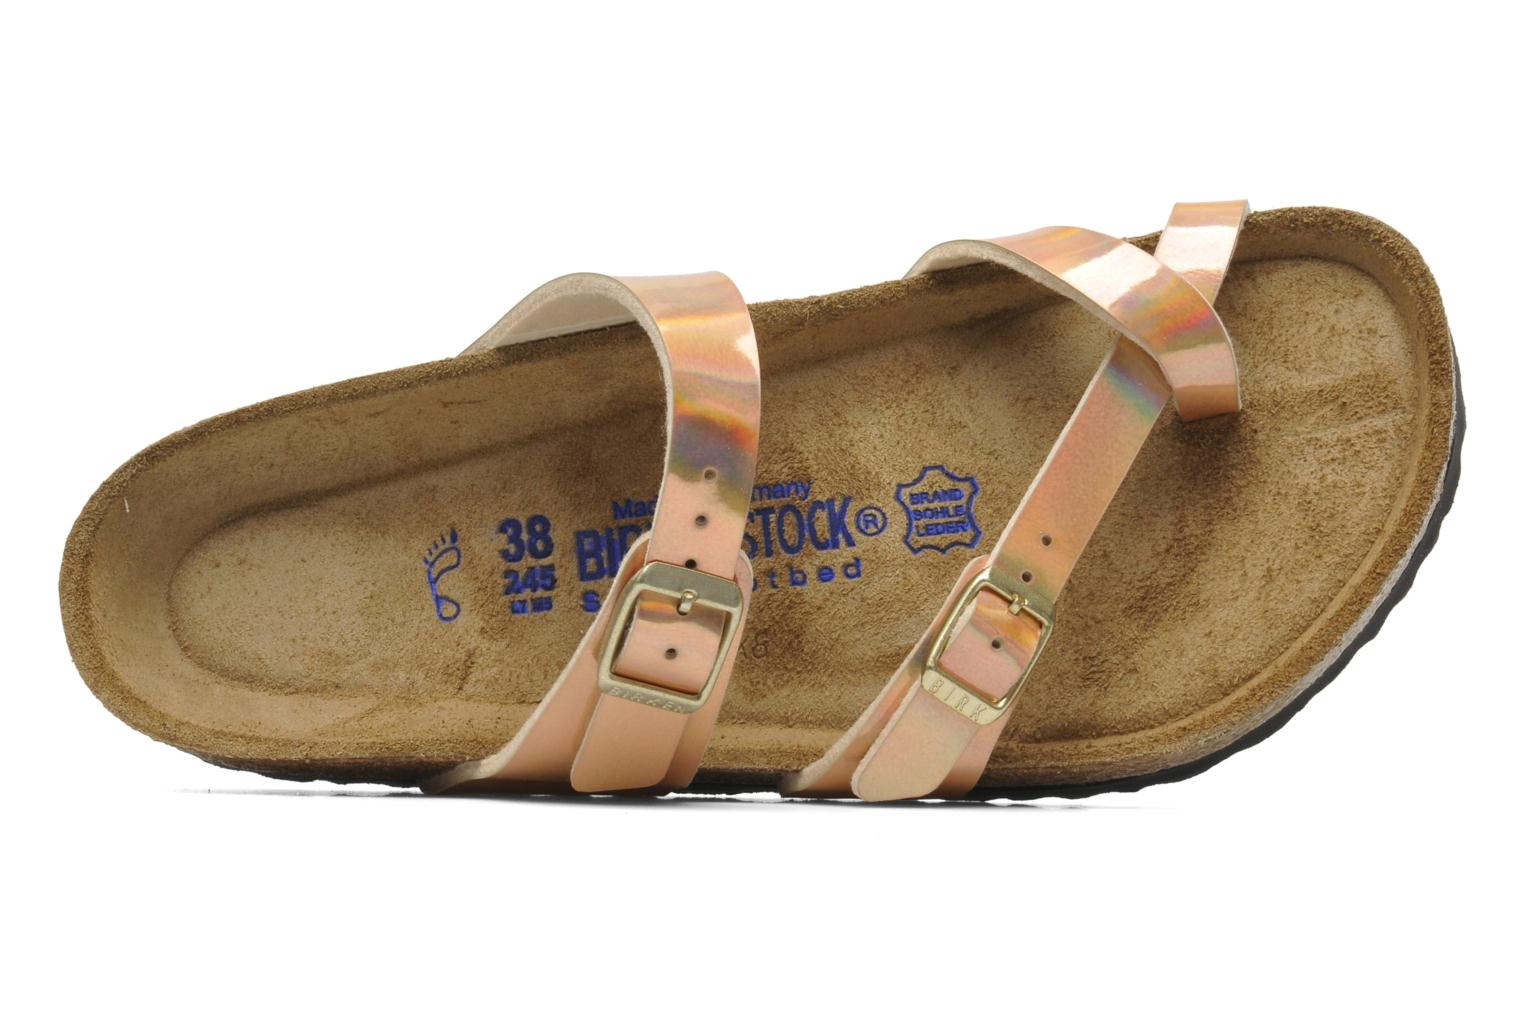 Birkenstock Mayari Sandals In Pink At Sarenza Co Uk 218013